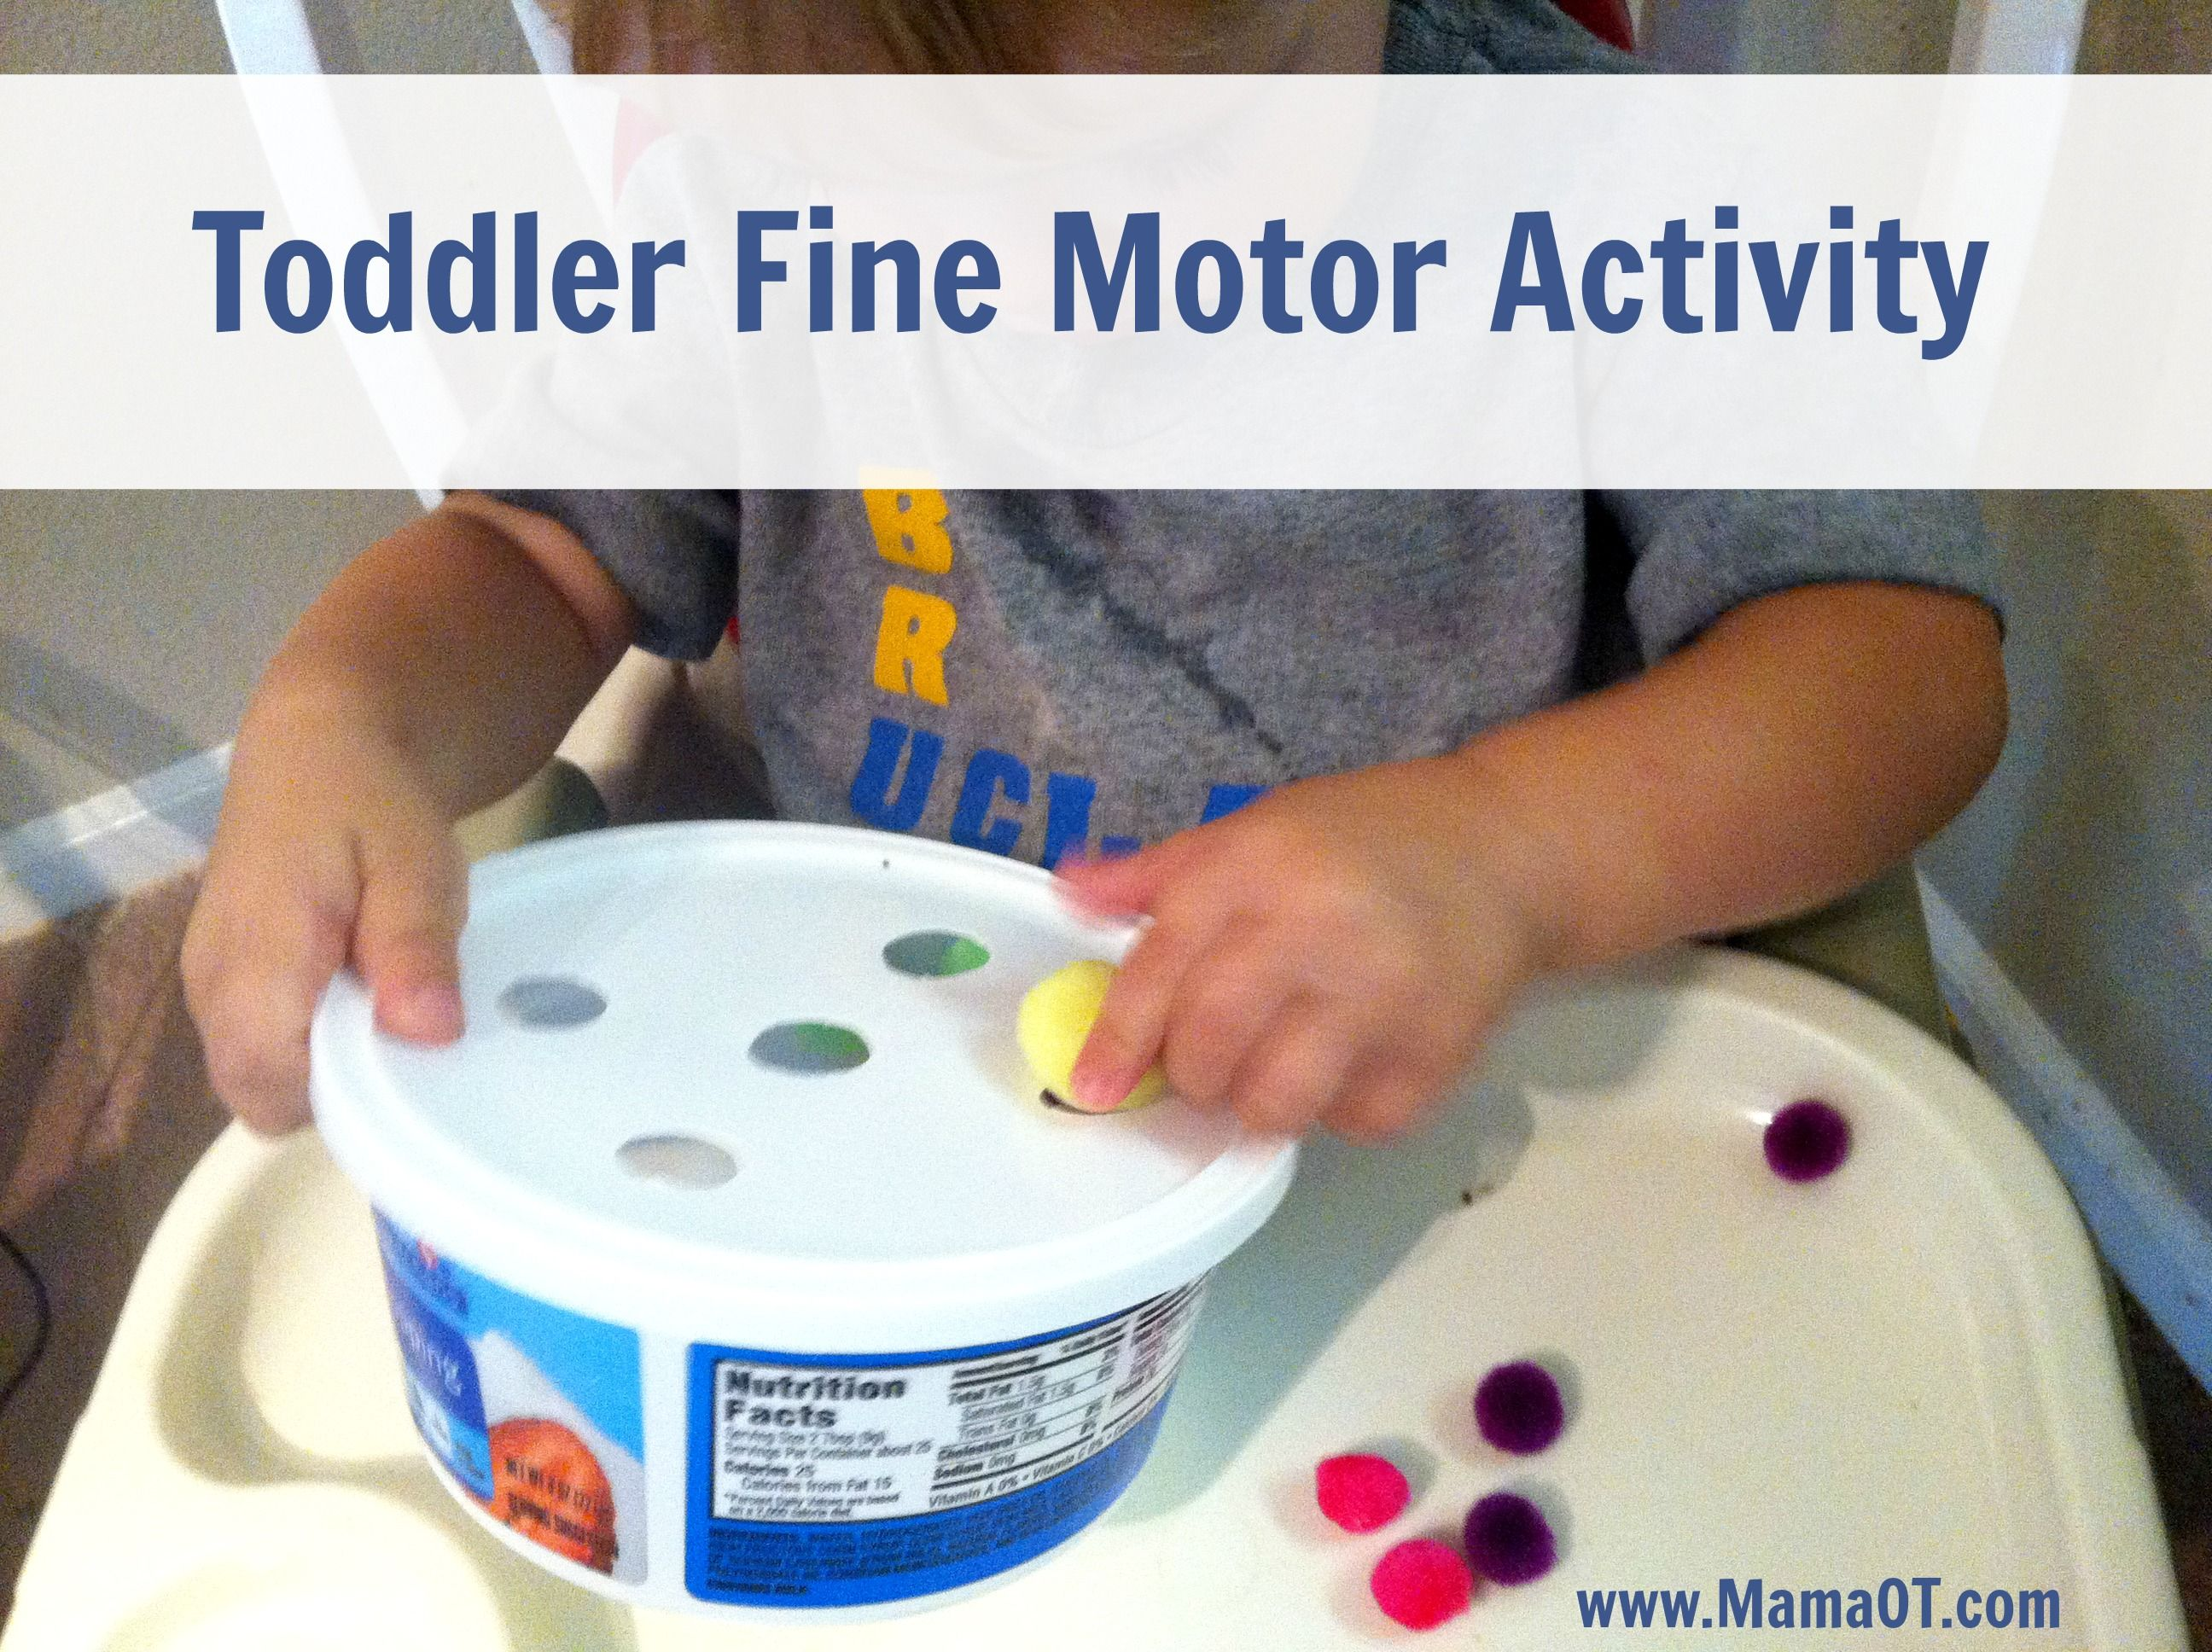 Toddler Fine Motor Activity with Pom Poms and a Plastic Container